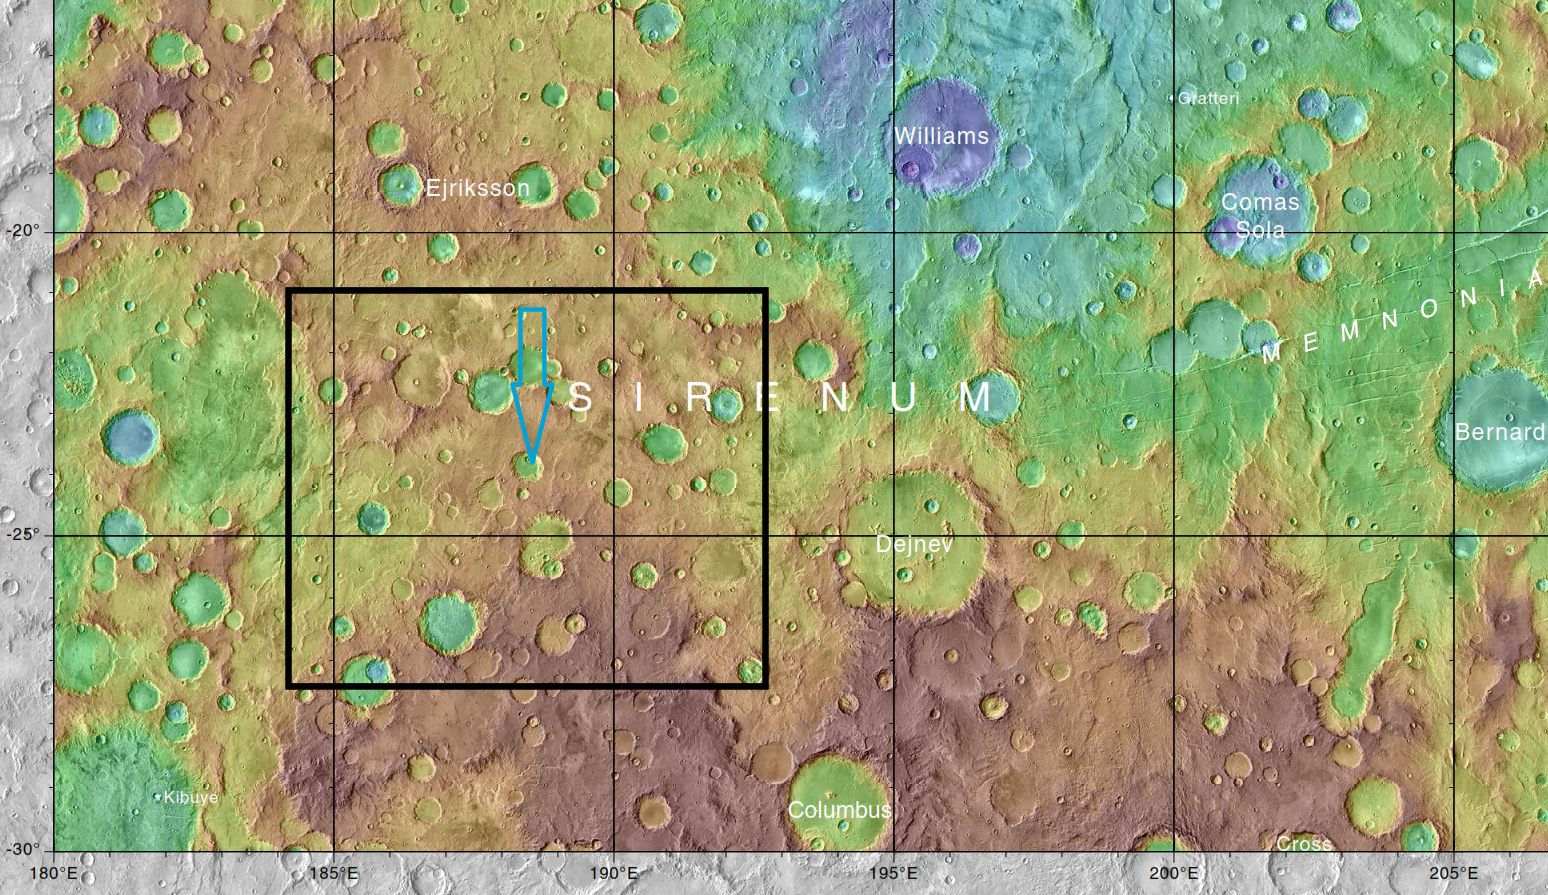 Map showing area covered in the above photos with a black rectangle. Blue arrow indicates the spot eventually imaged by HiRISE. The relative positions of Columbus Crater, Williams Crater, Ejriksson Crater, Dejnev Crater, and Bernard Crater are shown.